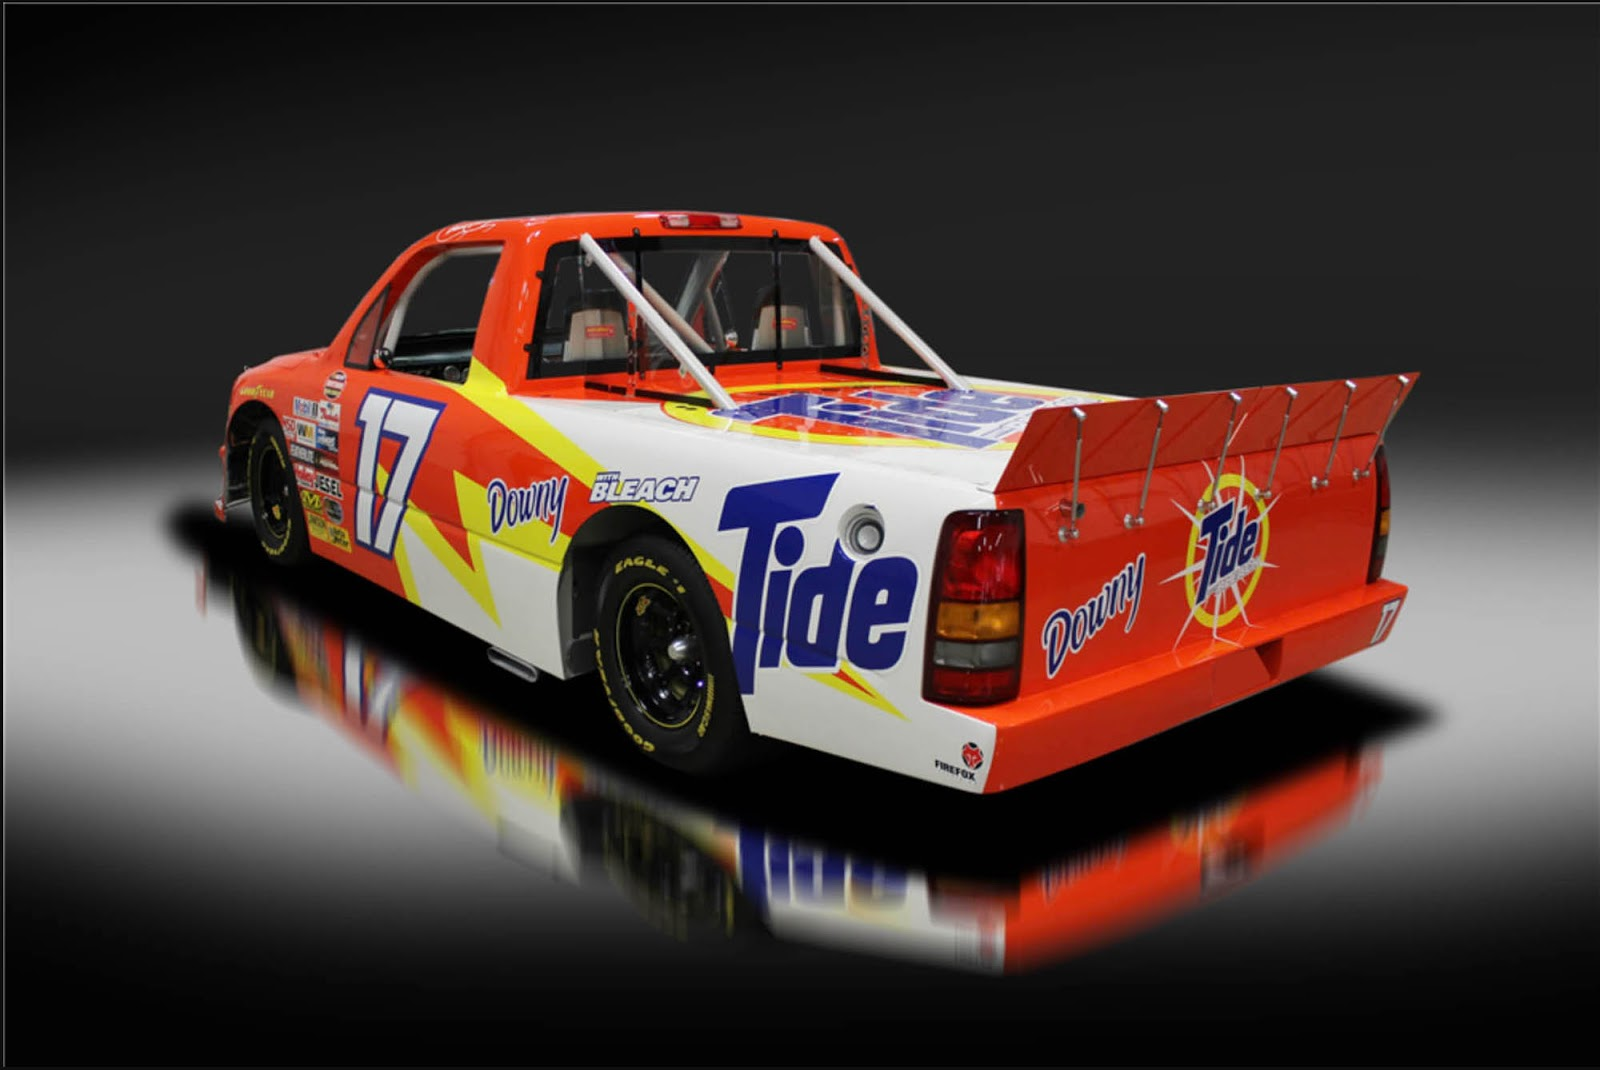 Buy This Nascar Racing Truck Drive It On Public Streets